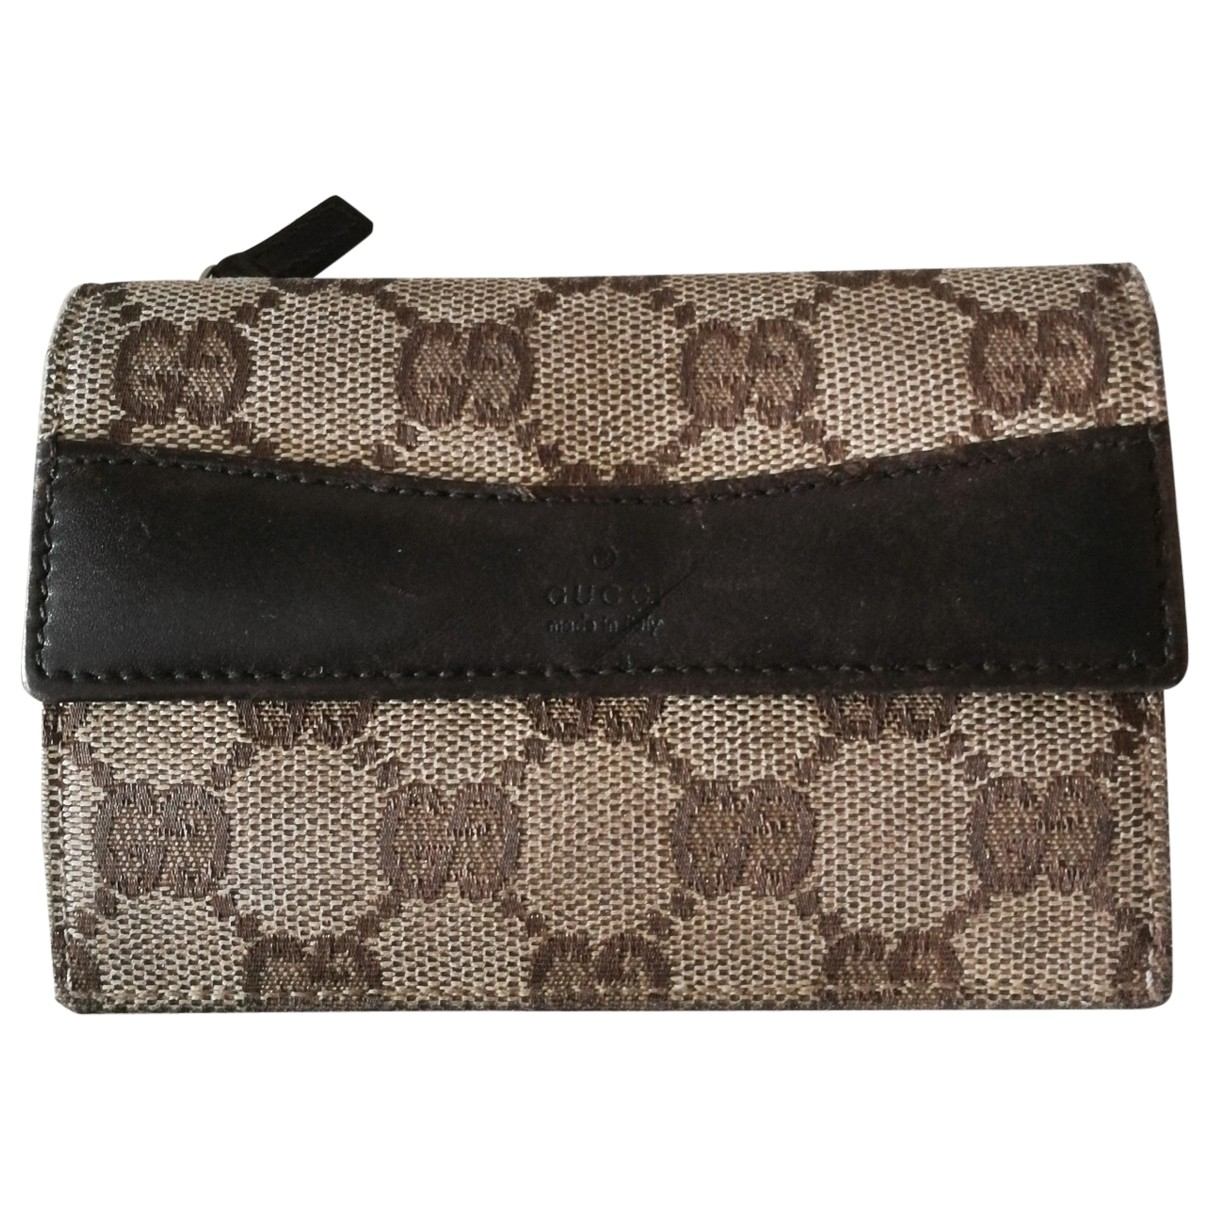 Gucci Ophidia Multicolour Cloth wallet for Women \N